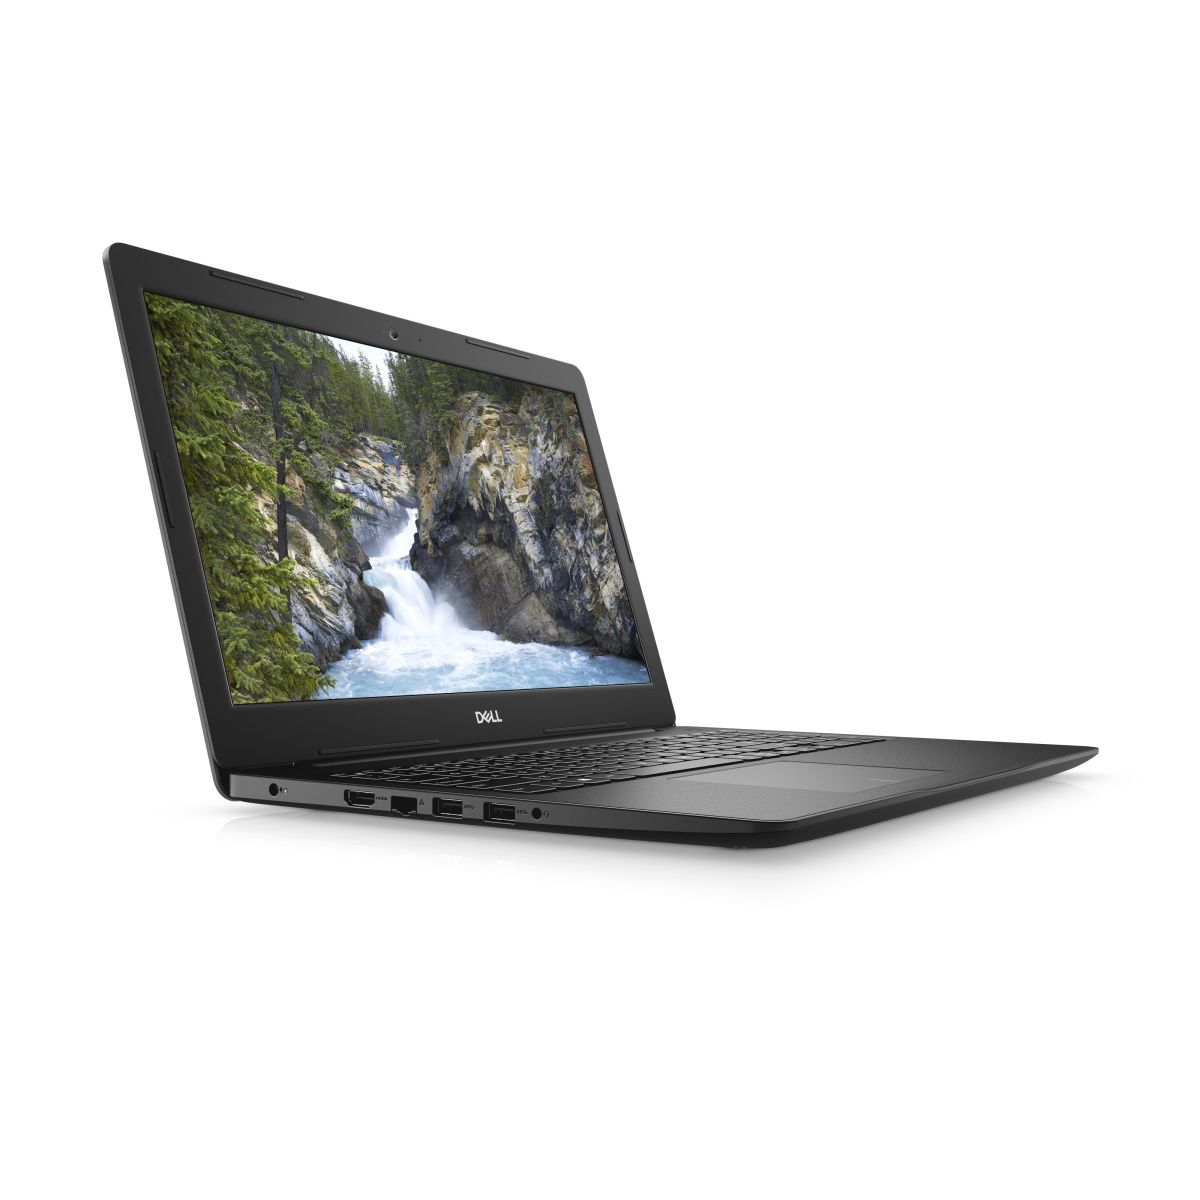 Notebook Dell Vostro 3583 Core I5 8265u Memoria 4gb Hd 1tb Tela 15.6' Led Hd Sistema Windows 10 Pro